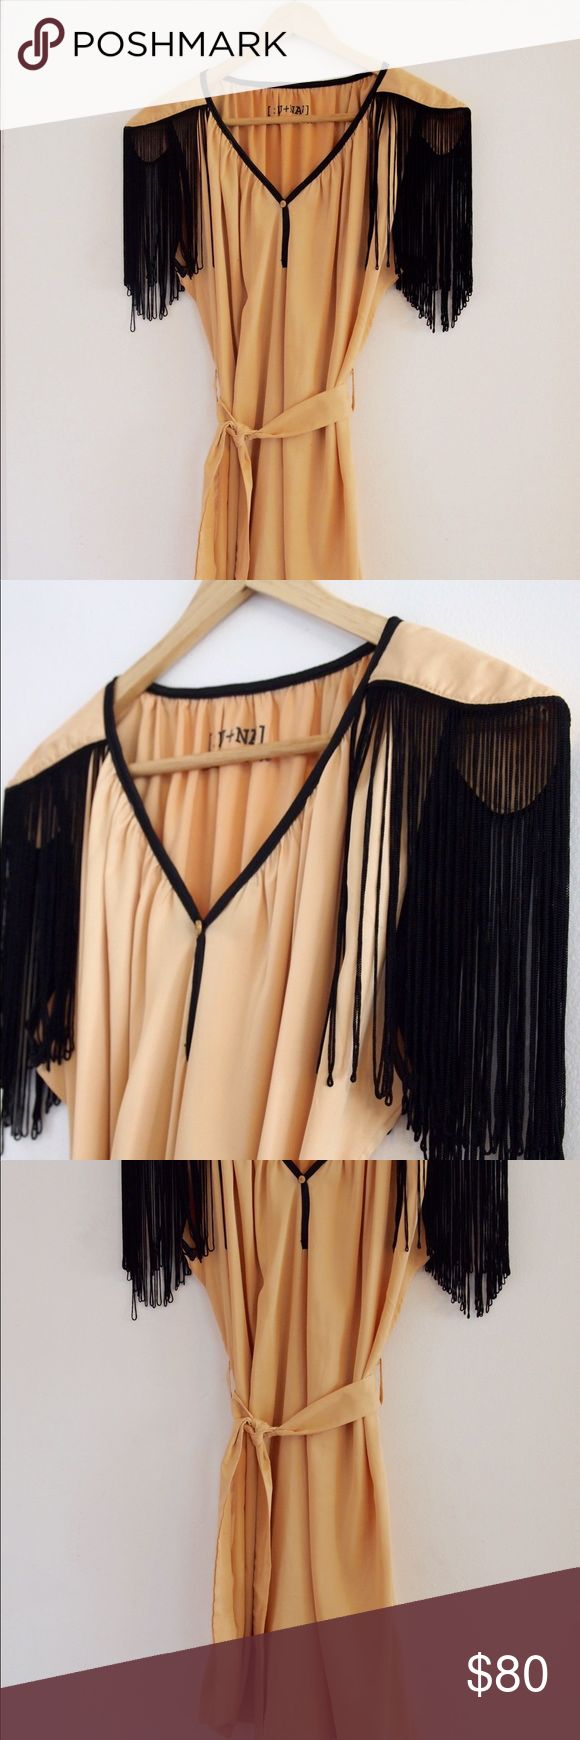 Fringe Cocktail dress Very Unique item! I bought this in Australia in Sydney & maybe wore it once. It's in excellent condition & soo comfortable! Could be worn as a cocktail dress or even as a Costume piece for a 1920's style party or a Halloween costume! Dresses Mini